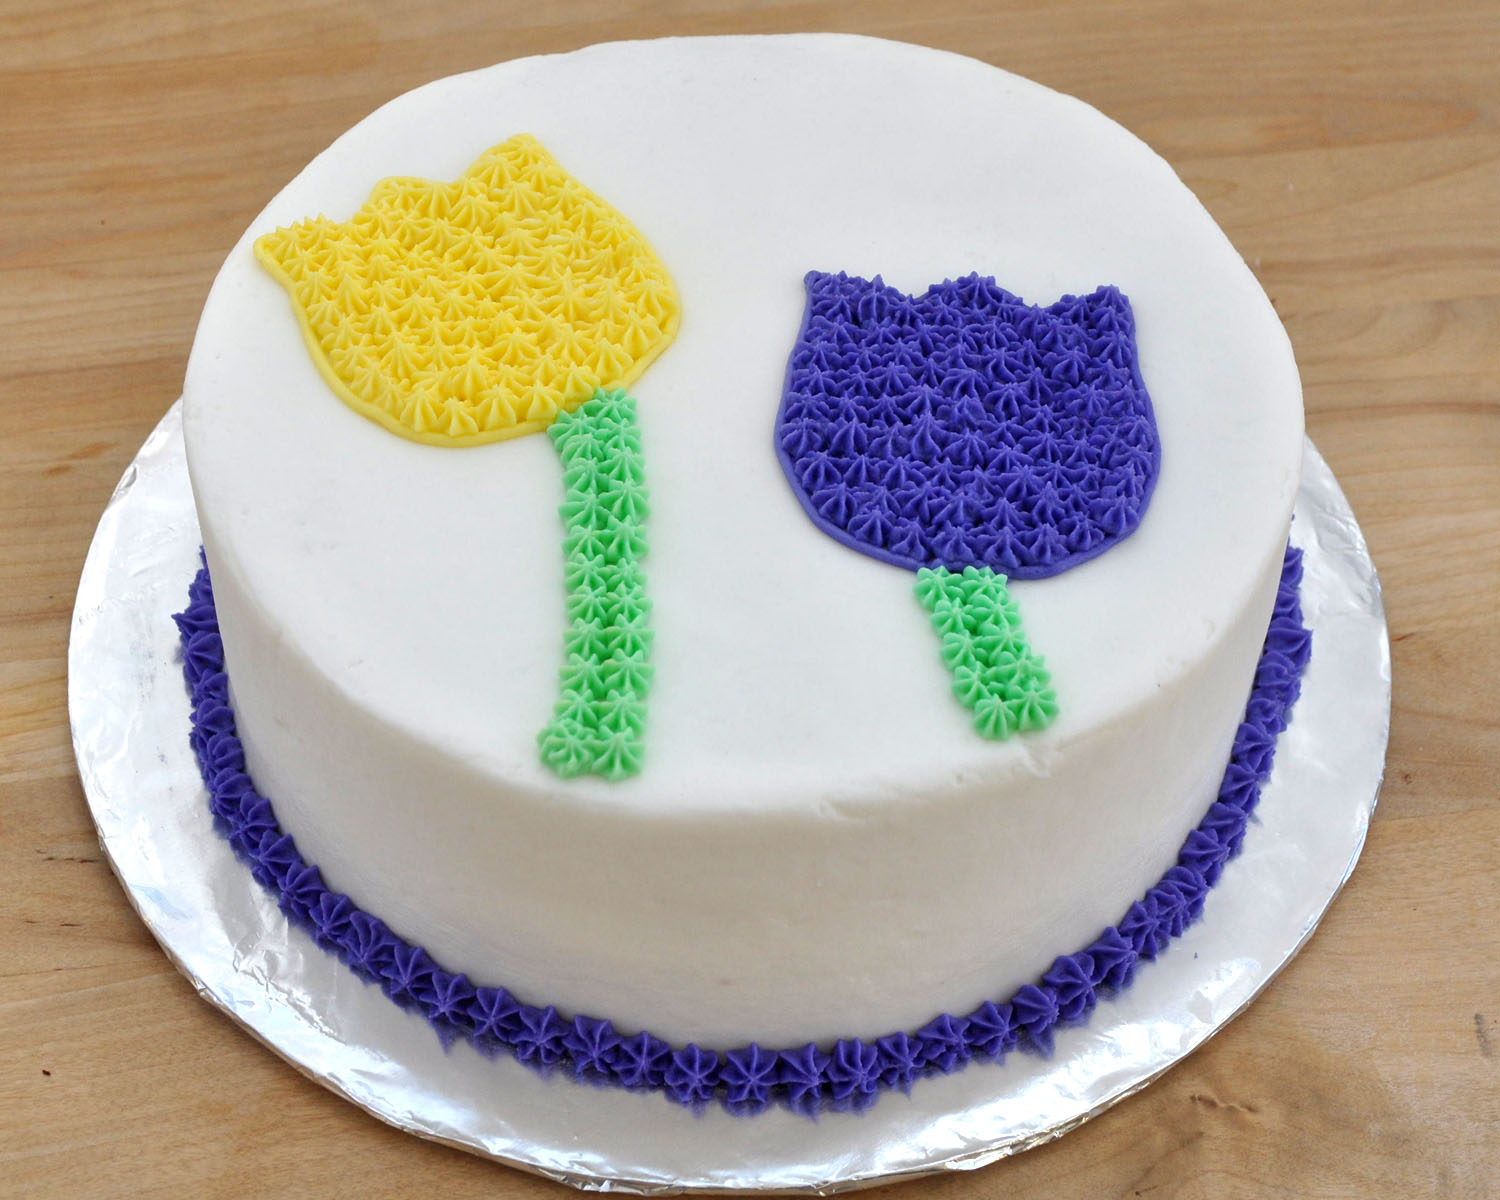 Easy Cake Decorating For Beginners : Beki Cook s Cake Blog: Cake Decorating 101 - Easy Birthday ...